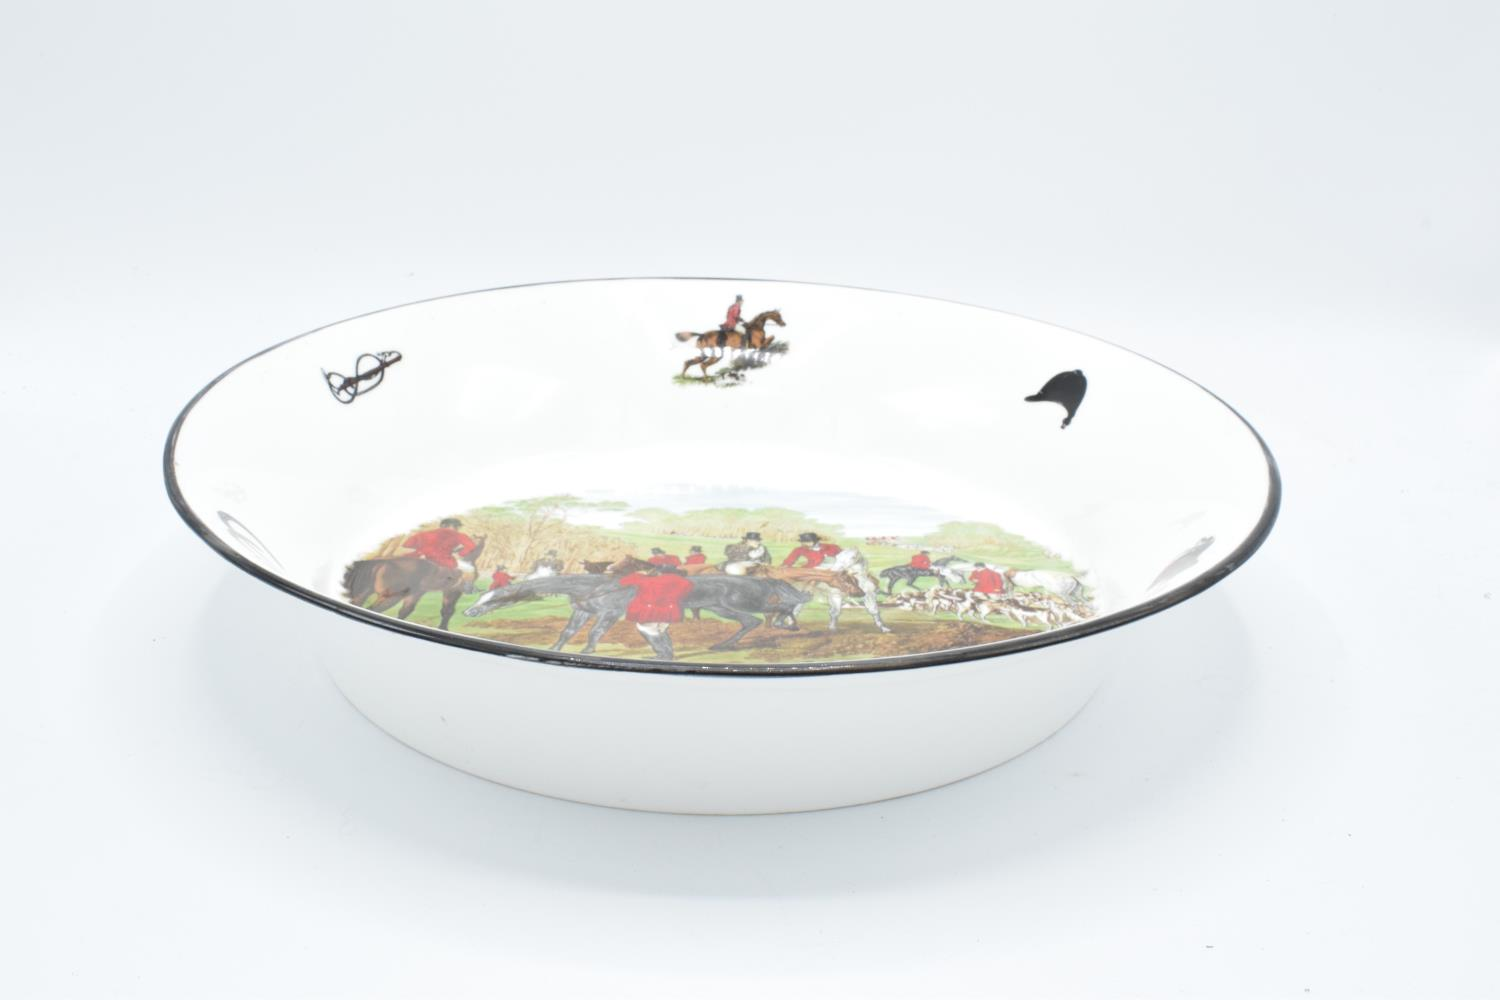 Large shallow bowl depicting a hunting scene of J.F Herring and Son, made by China Originals of - Image 2 of 4